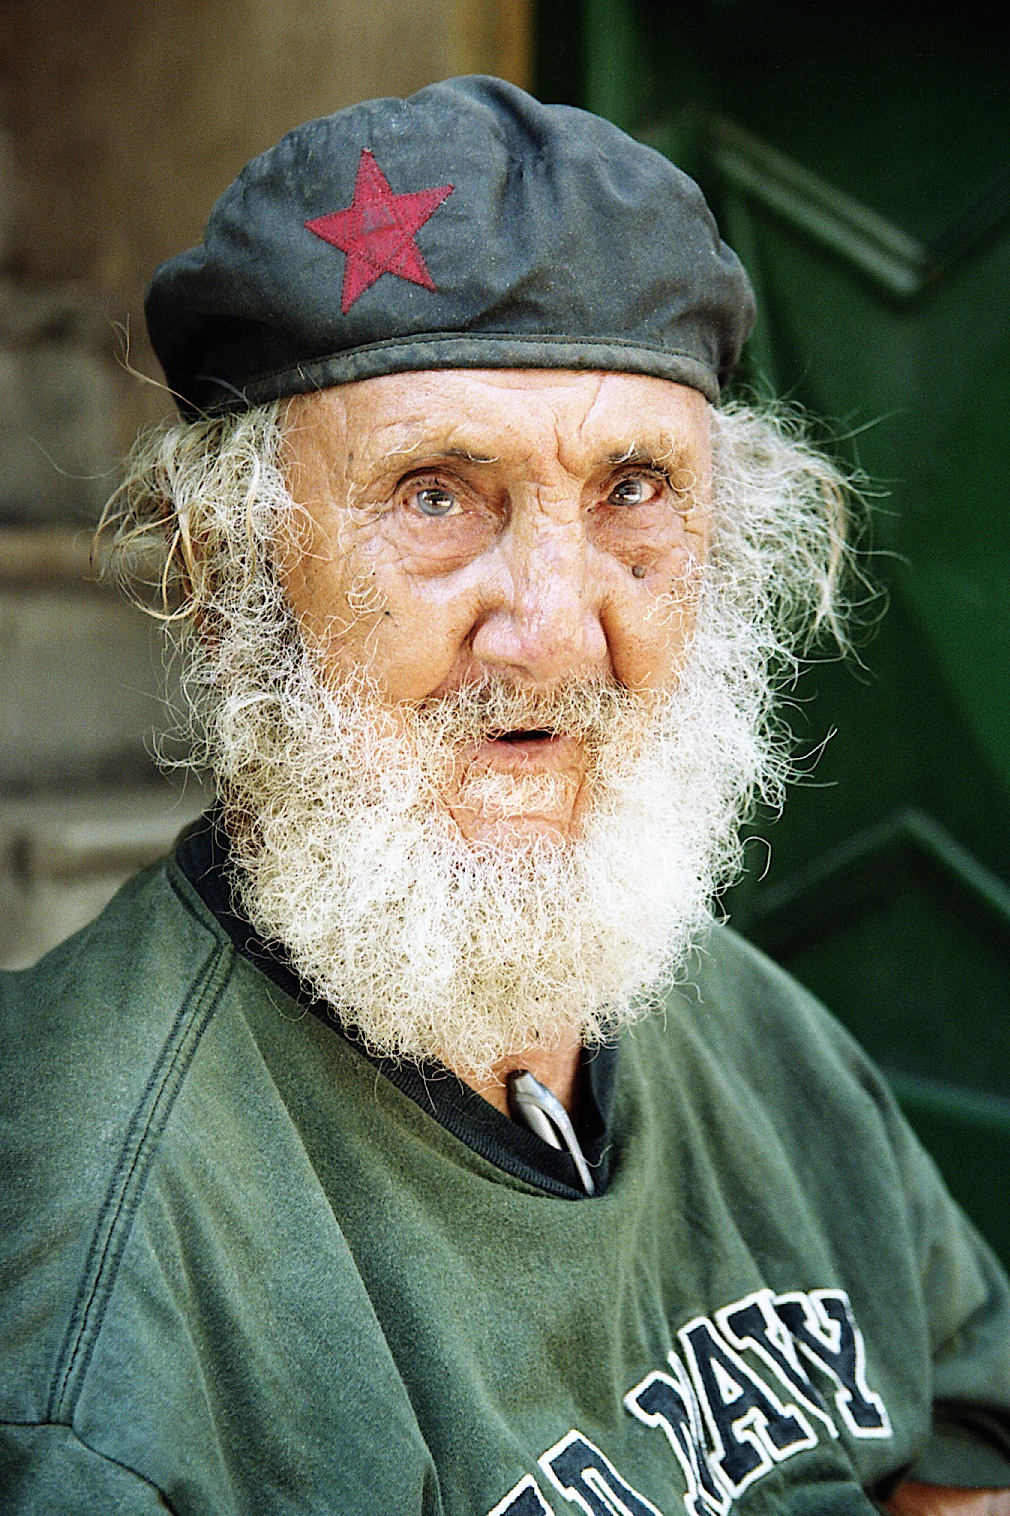 Cuban portrait 2.jpg